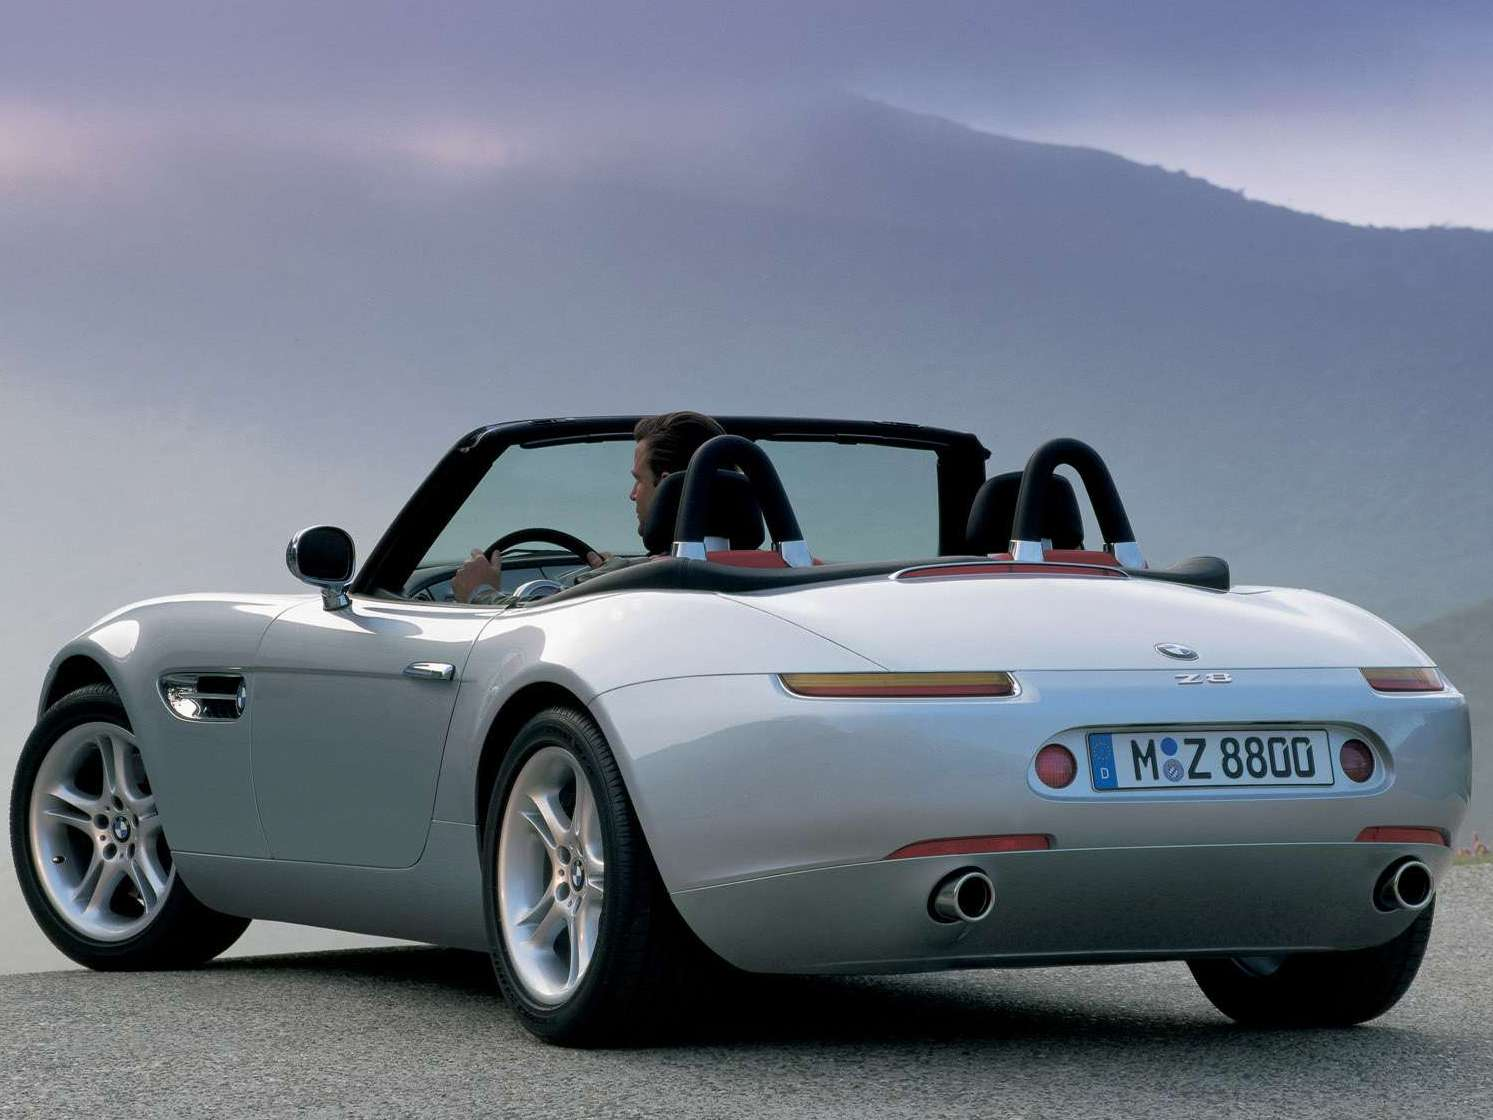 2001 Bmw Z8 Information And Photos Zombiedrive